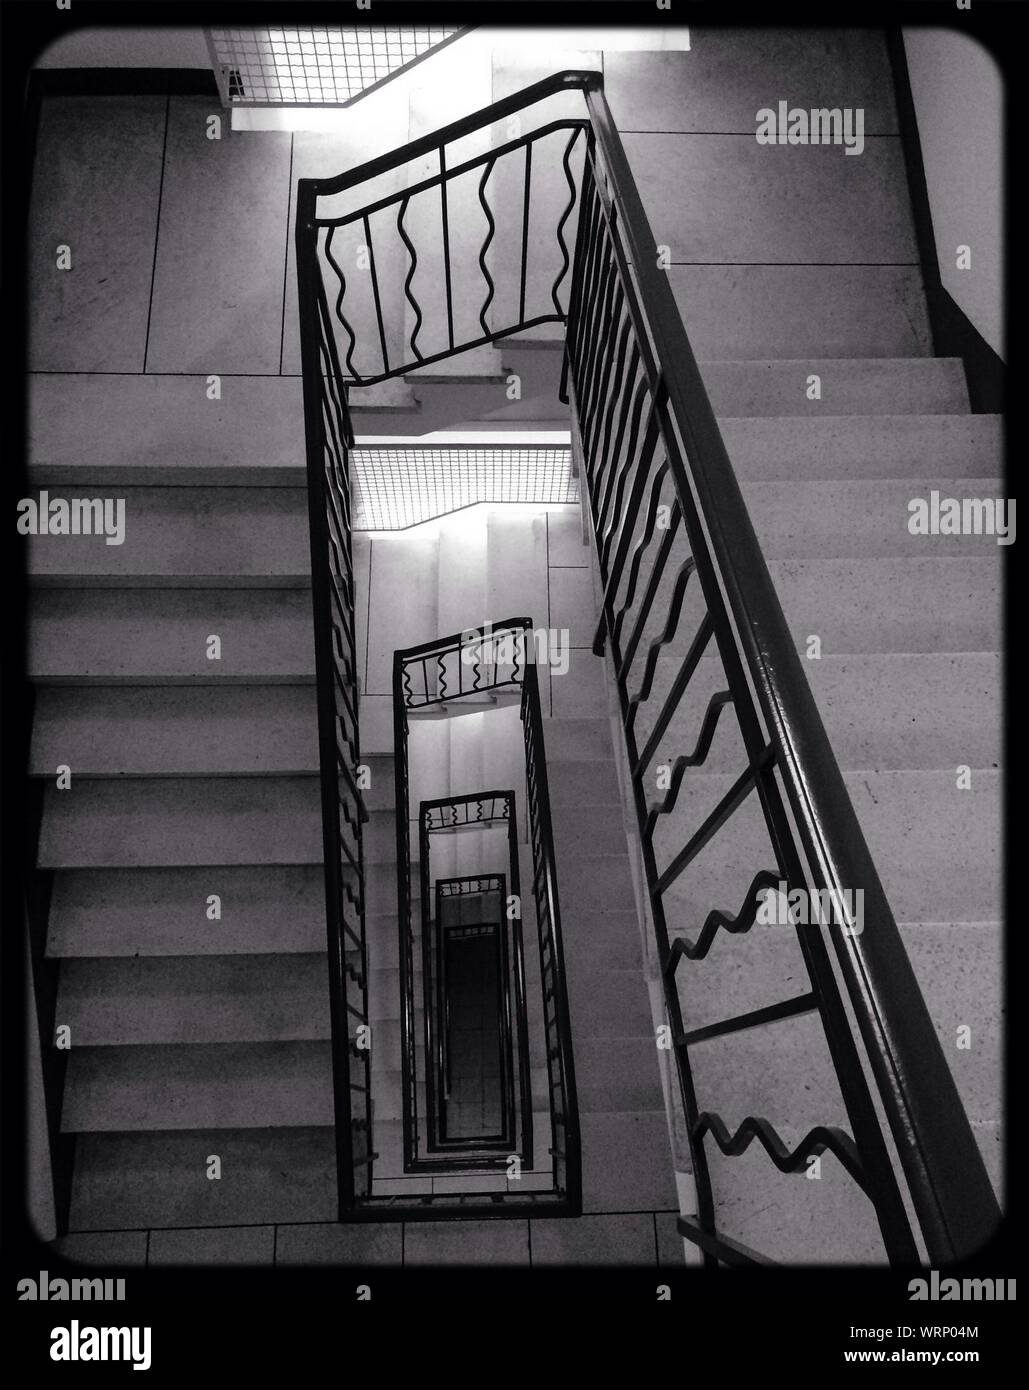 High Angle View Of Staircase With Wrought Iron Railing Of Residential Building Stock Photo Alamy